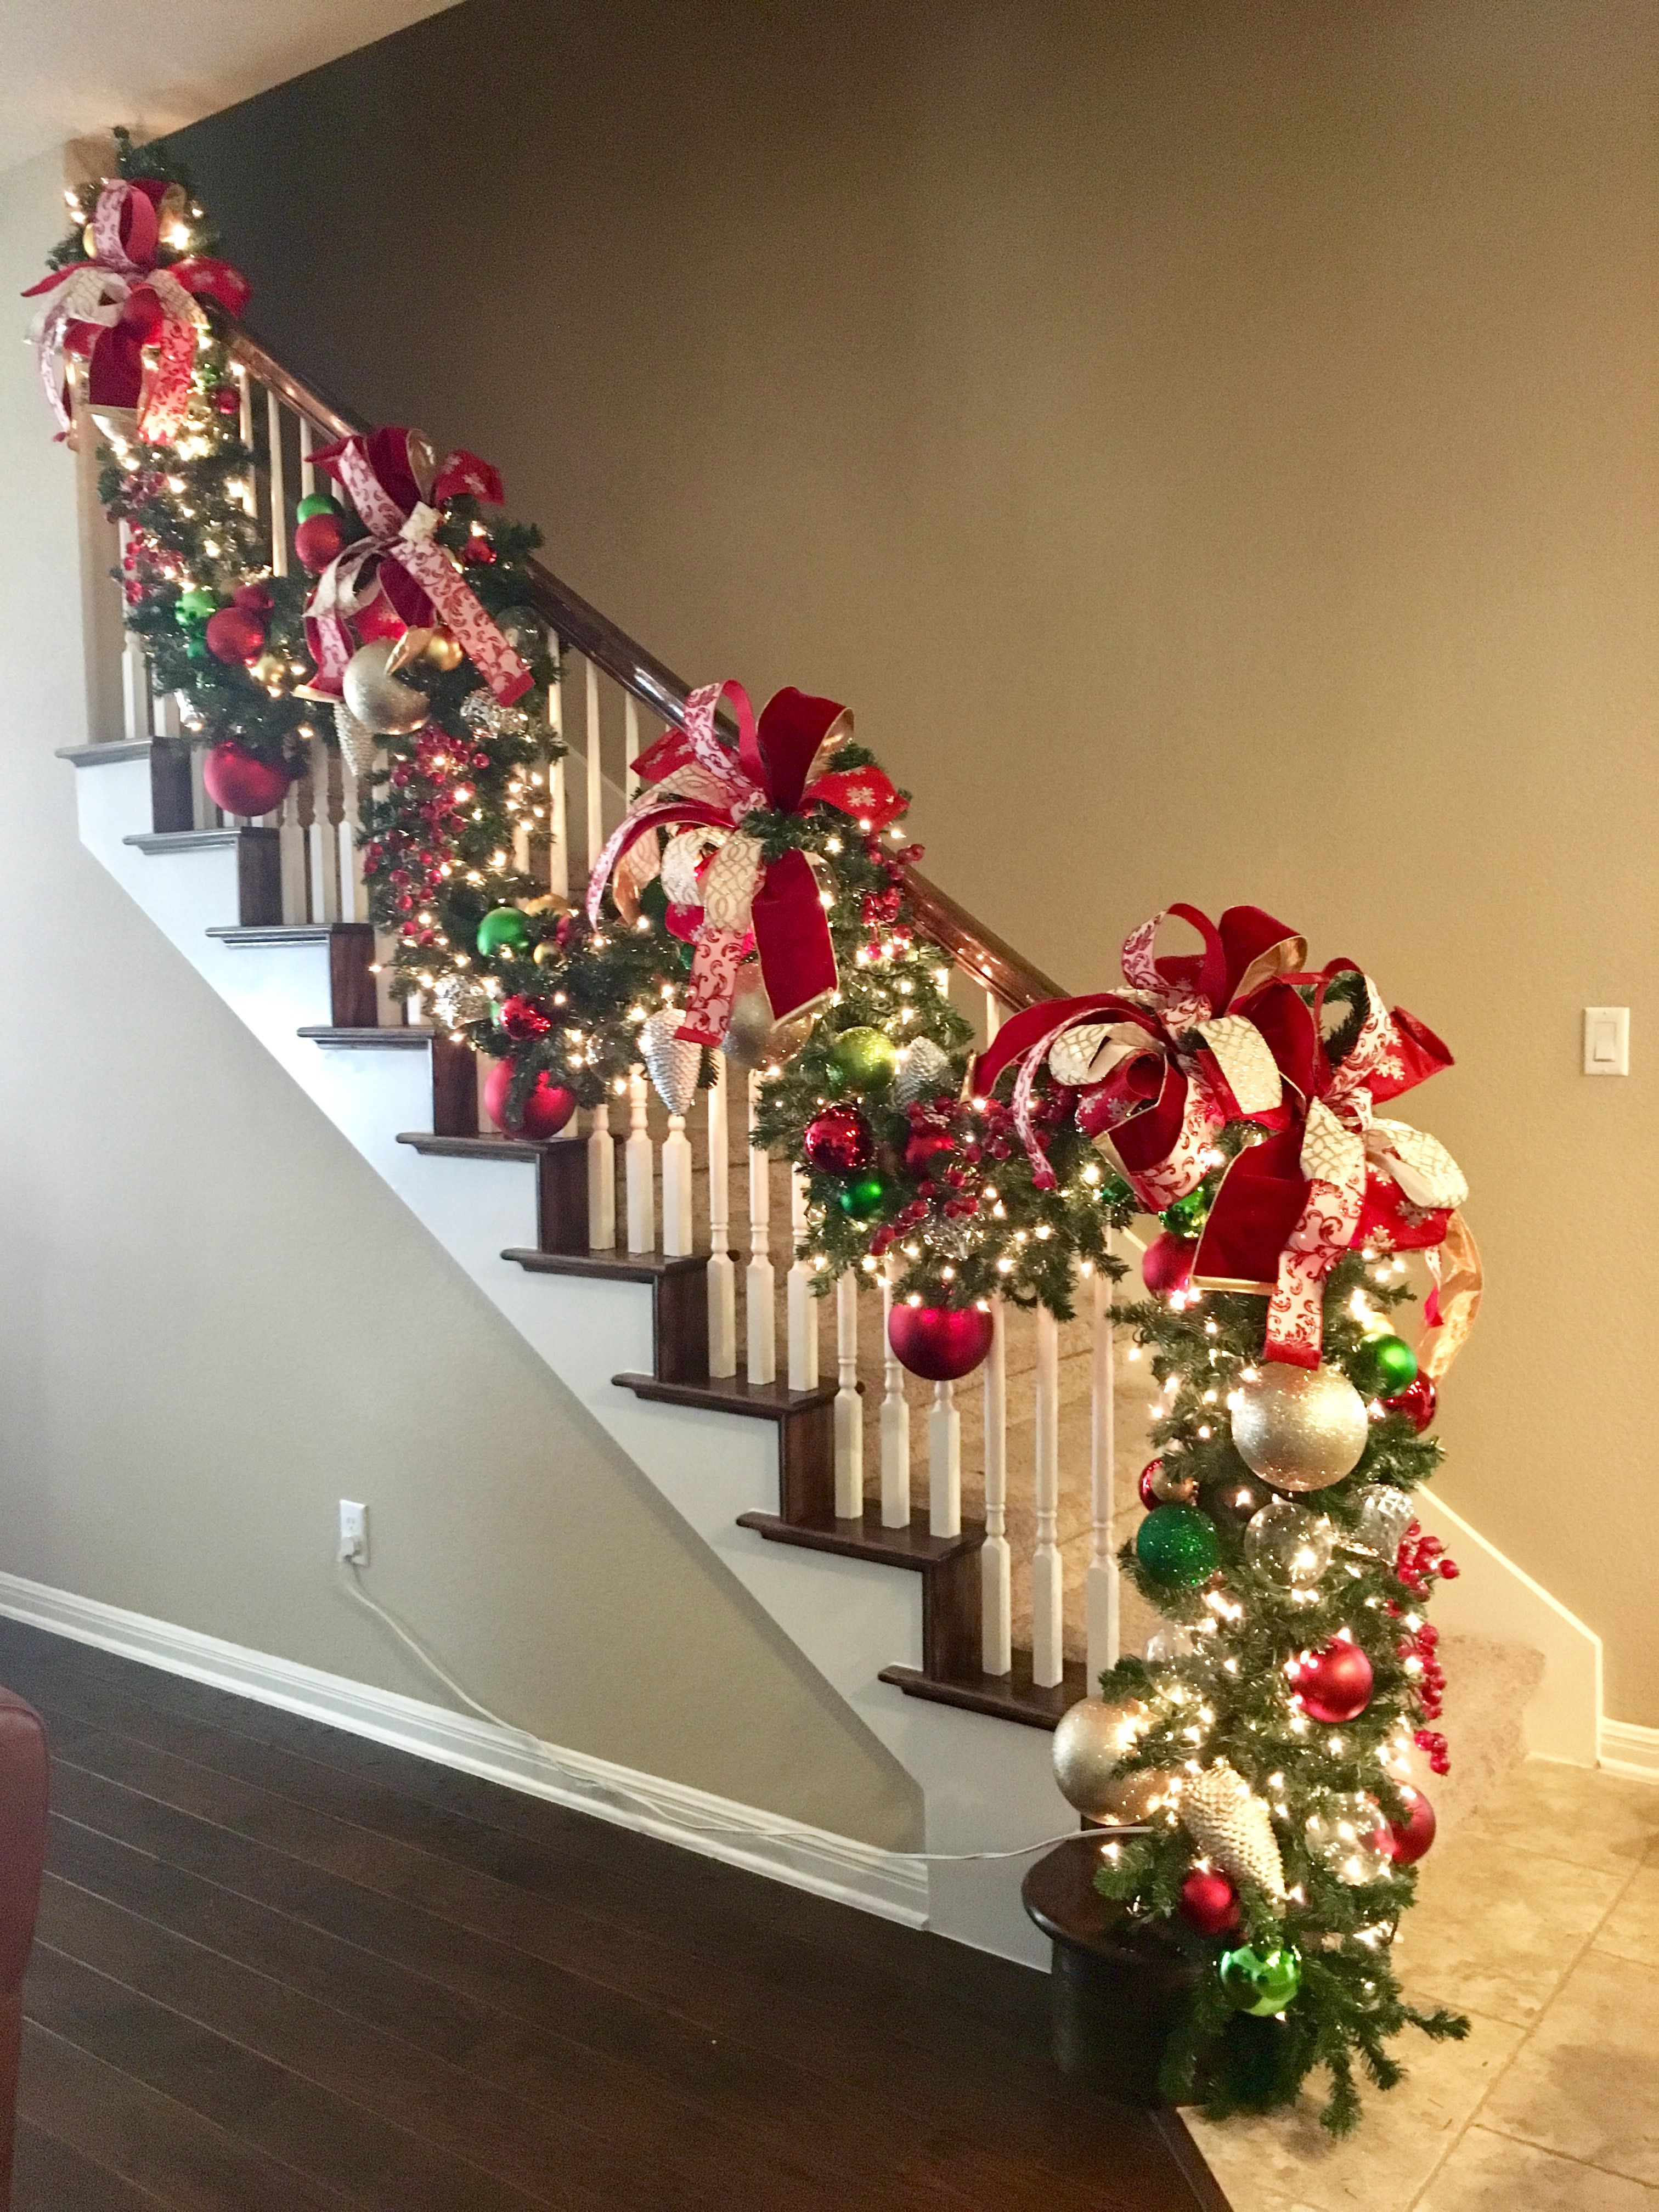 Holiday S Coming Decorating Your Staircase For A Cheerful Christmas Decoration Escalier Noel Decoration Noel Deco Noel